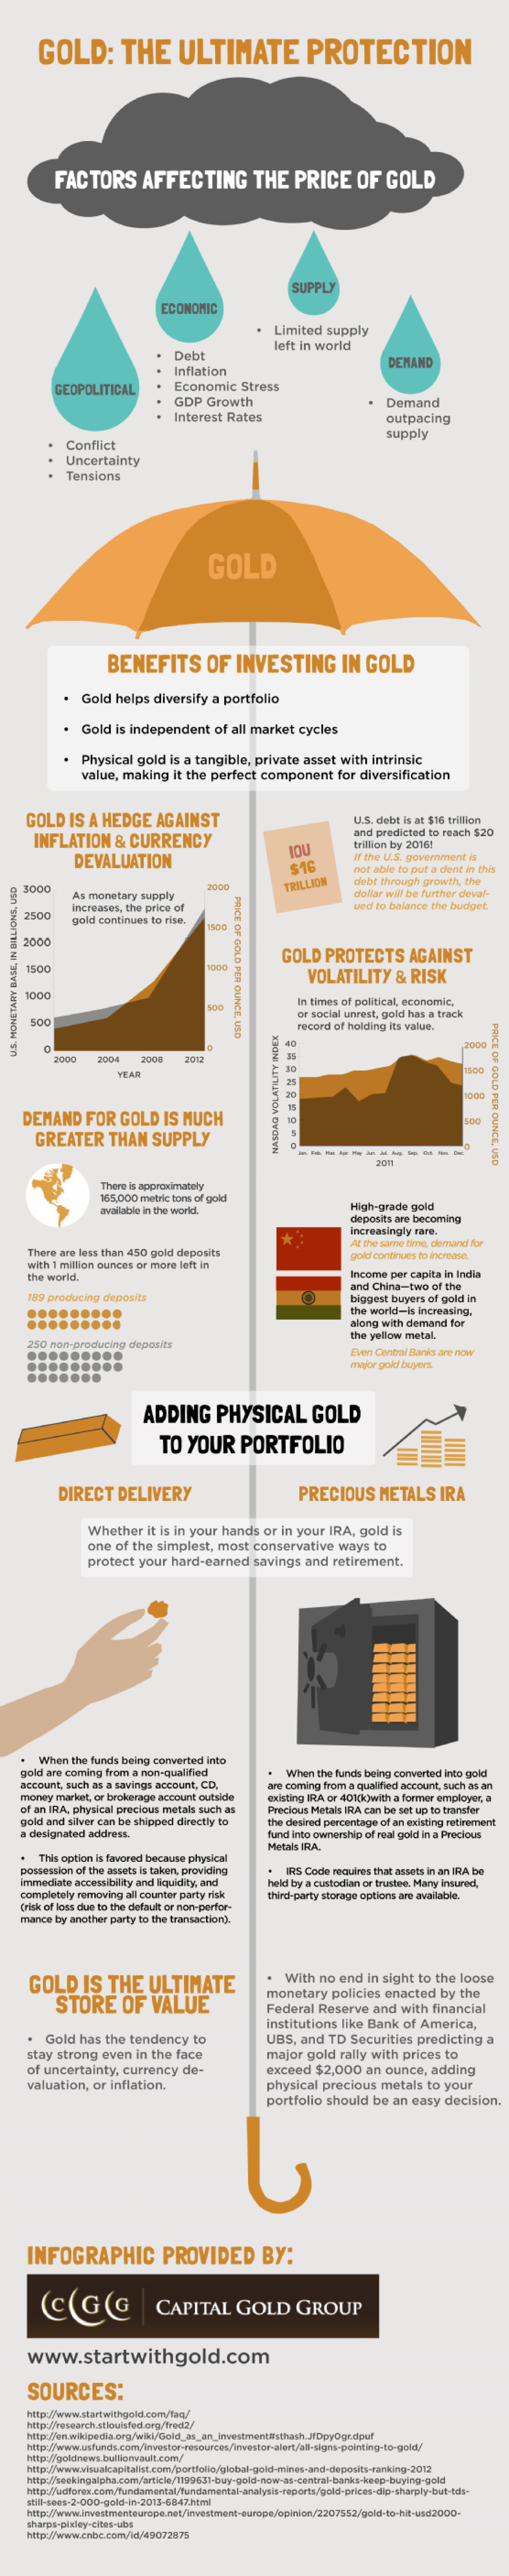 Gold: The Ultimate Protection Infographic